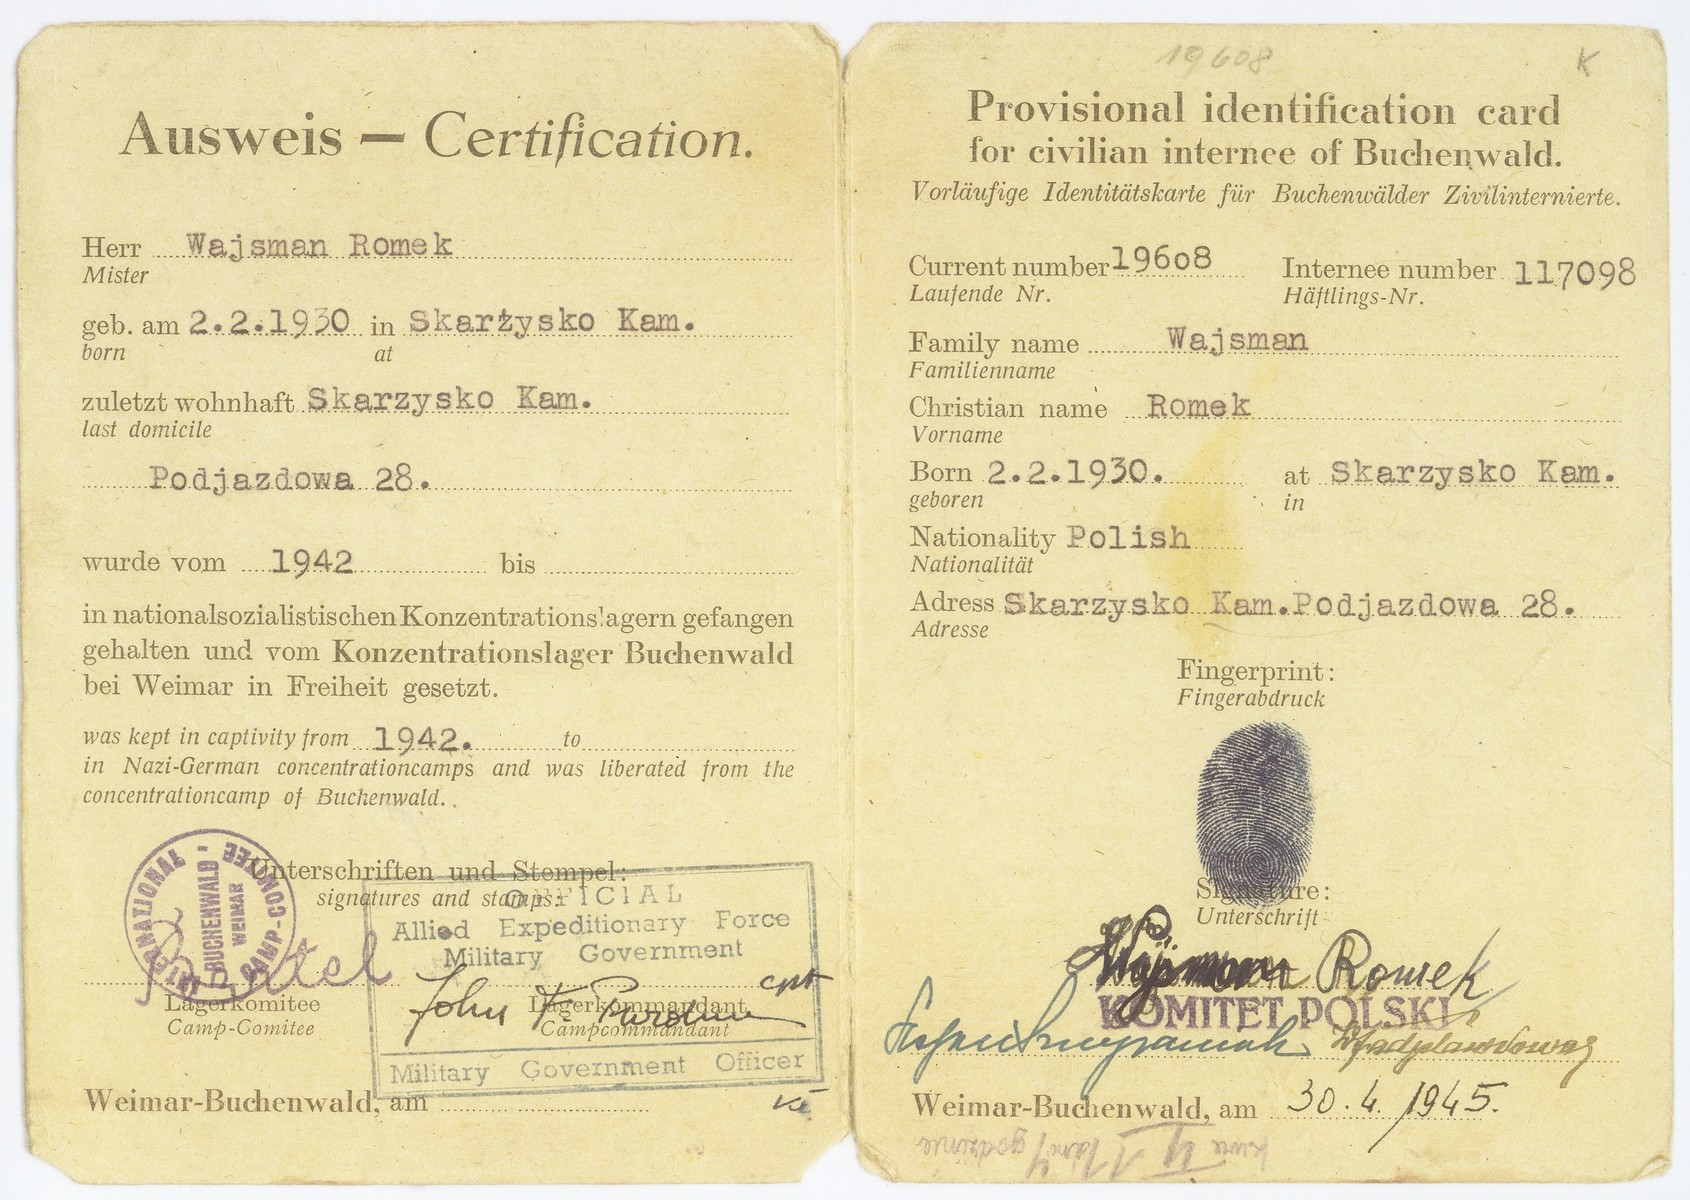 A provisional identification document issued to Buchenwald survivor Romek Wajsman by the International Camp Committee in Buchenwald on April 30, 1945.